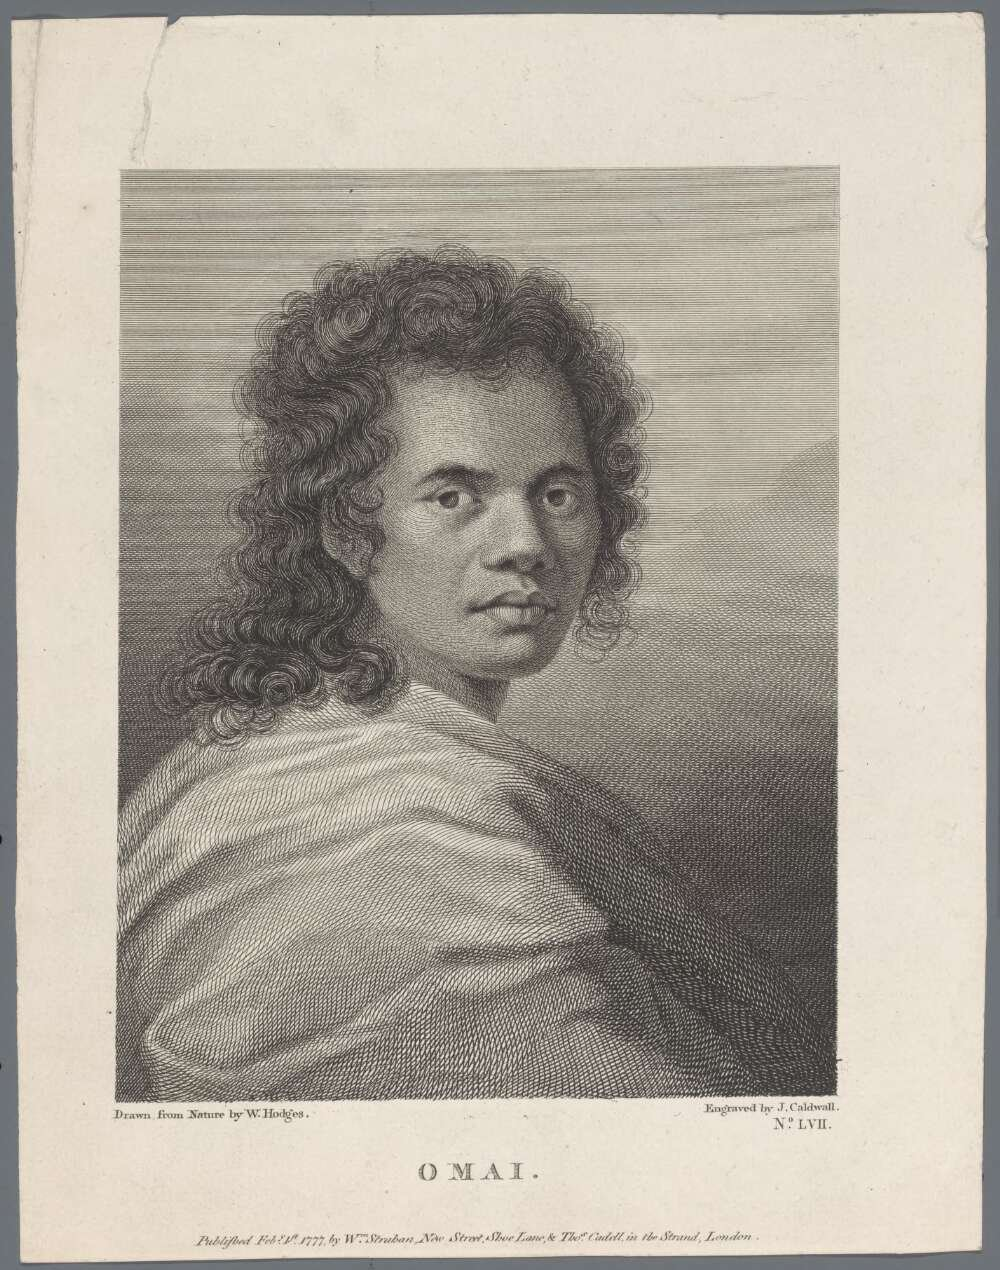 The Polynesian 'Prince' Who Took 18th-Century England by Storm